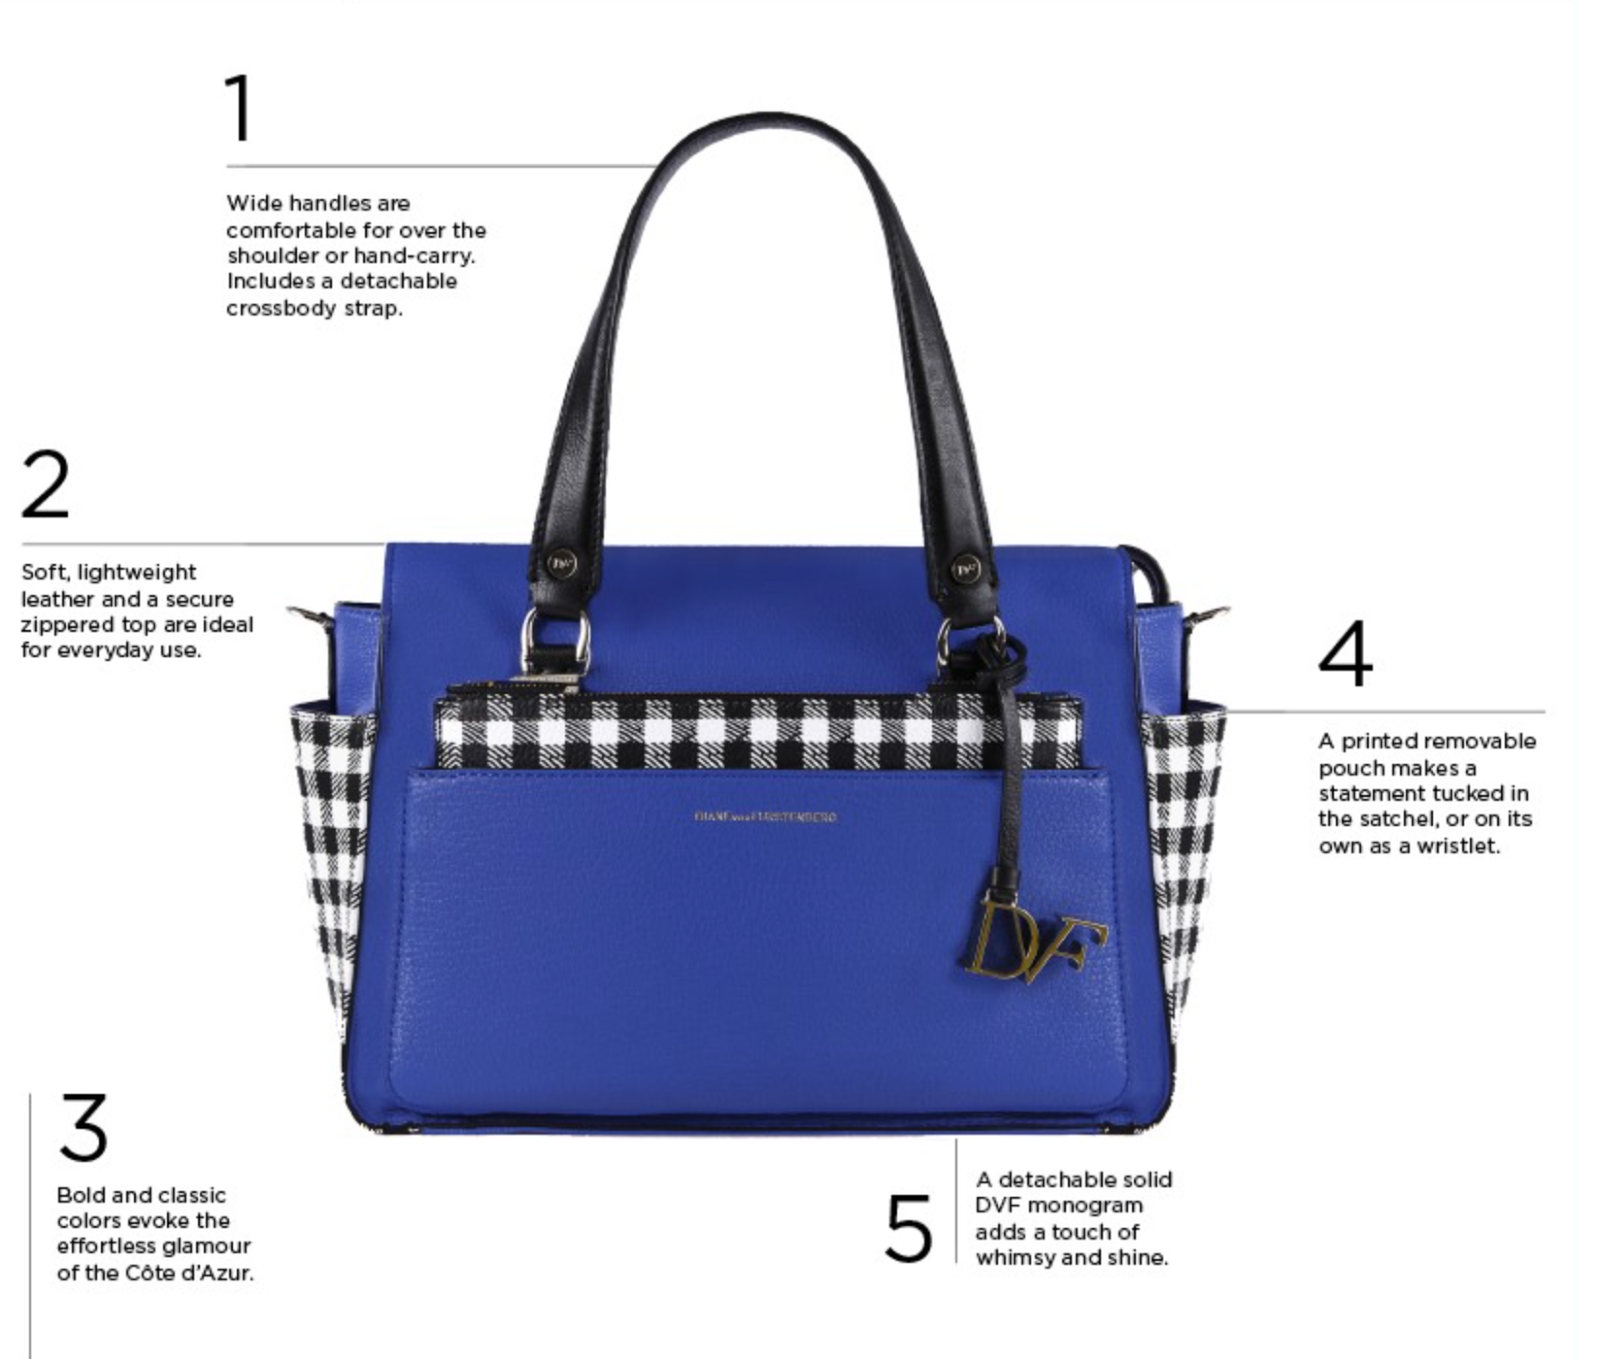 DVF's Introduces the Voyage Satchel For Spring 2015